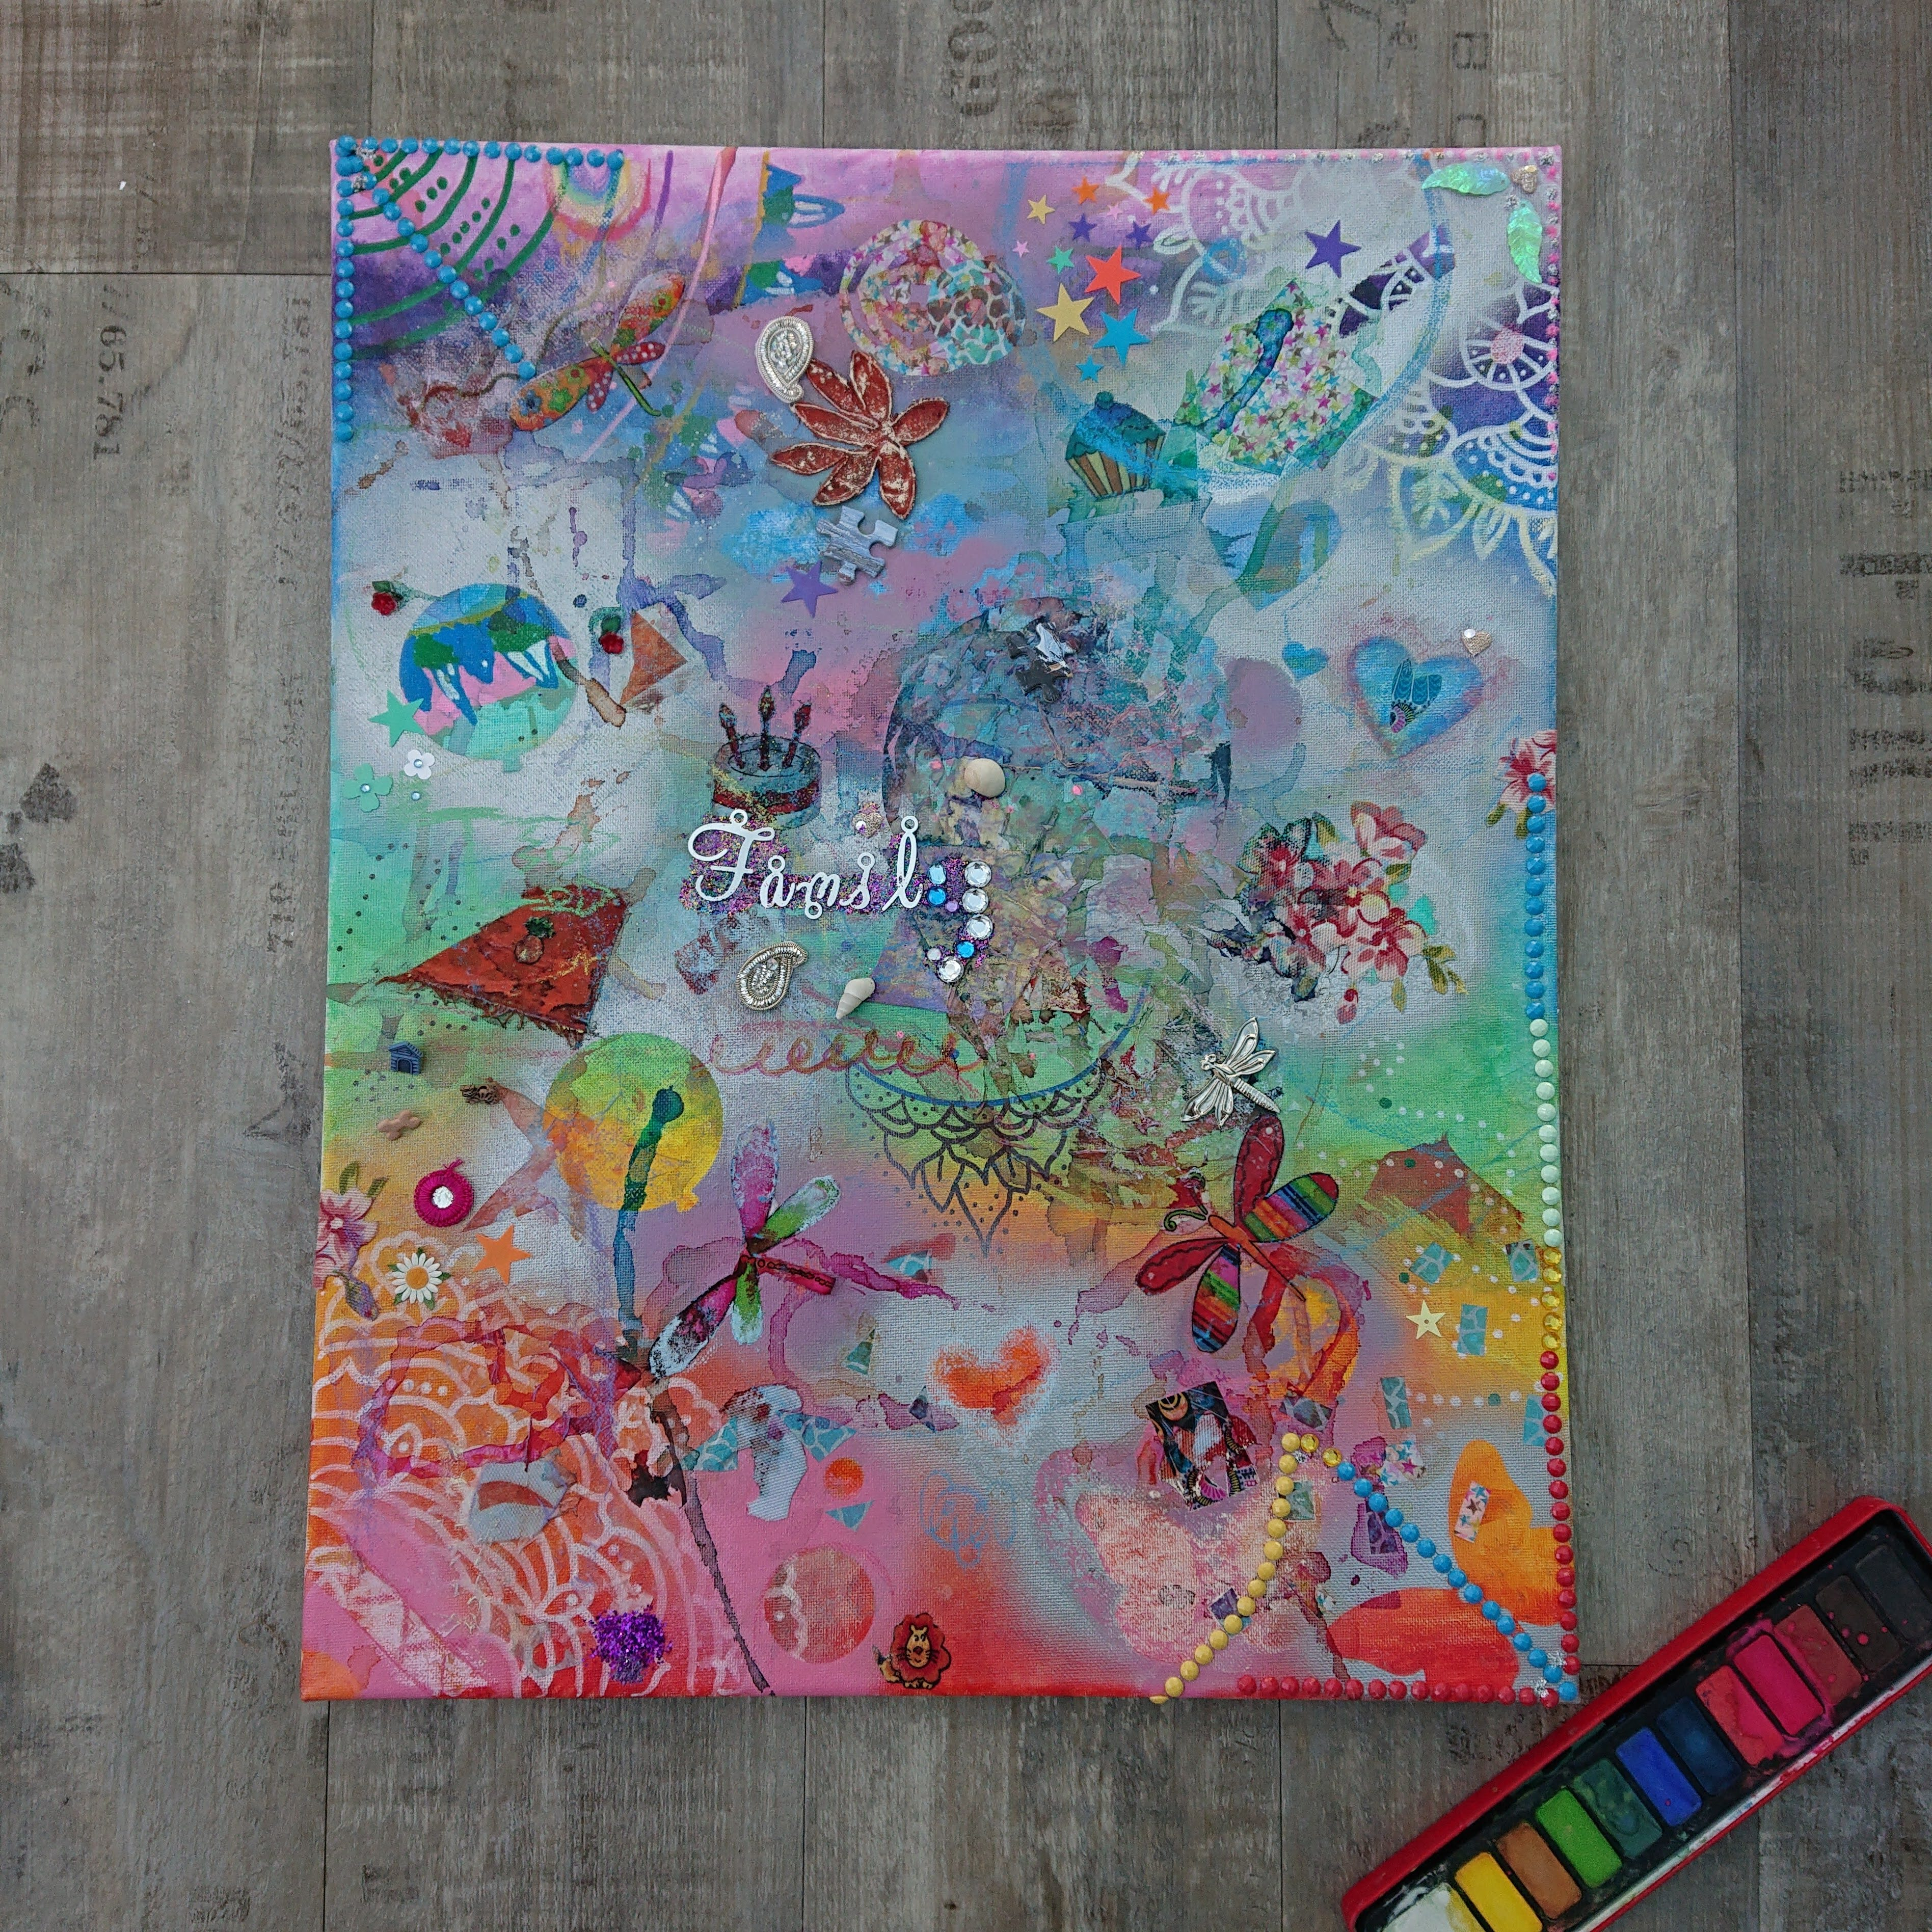 Painted canvas - easy summer crafts for kids